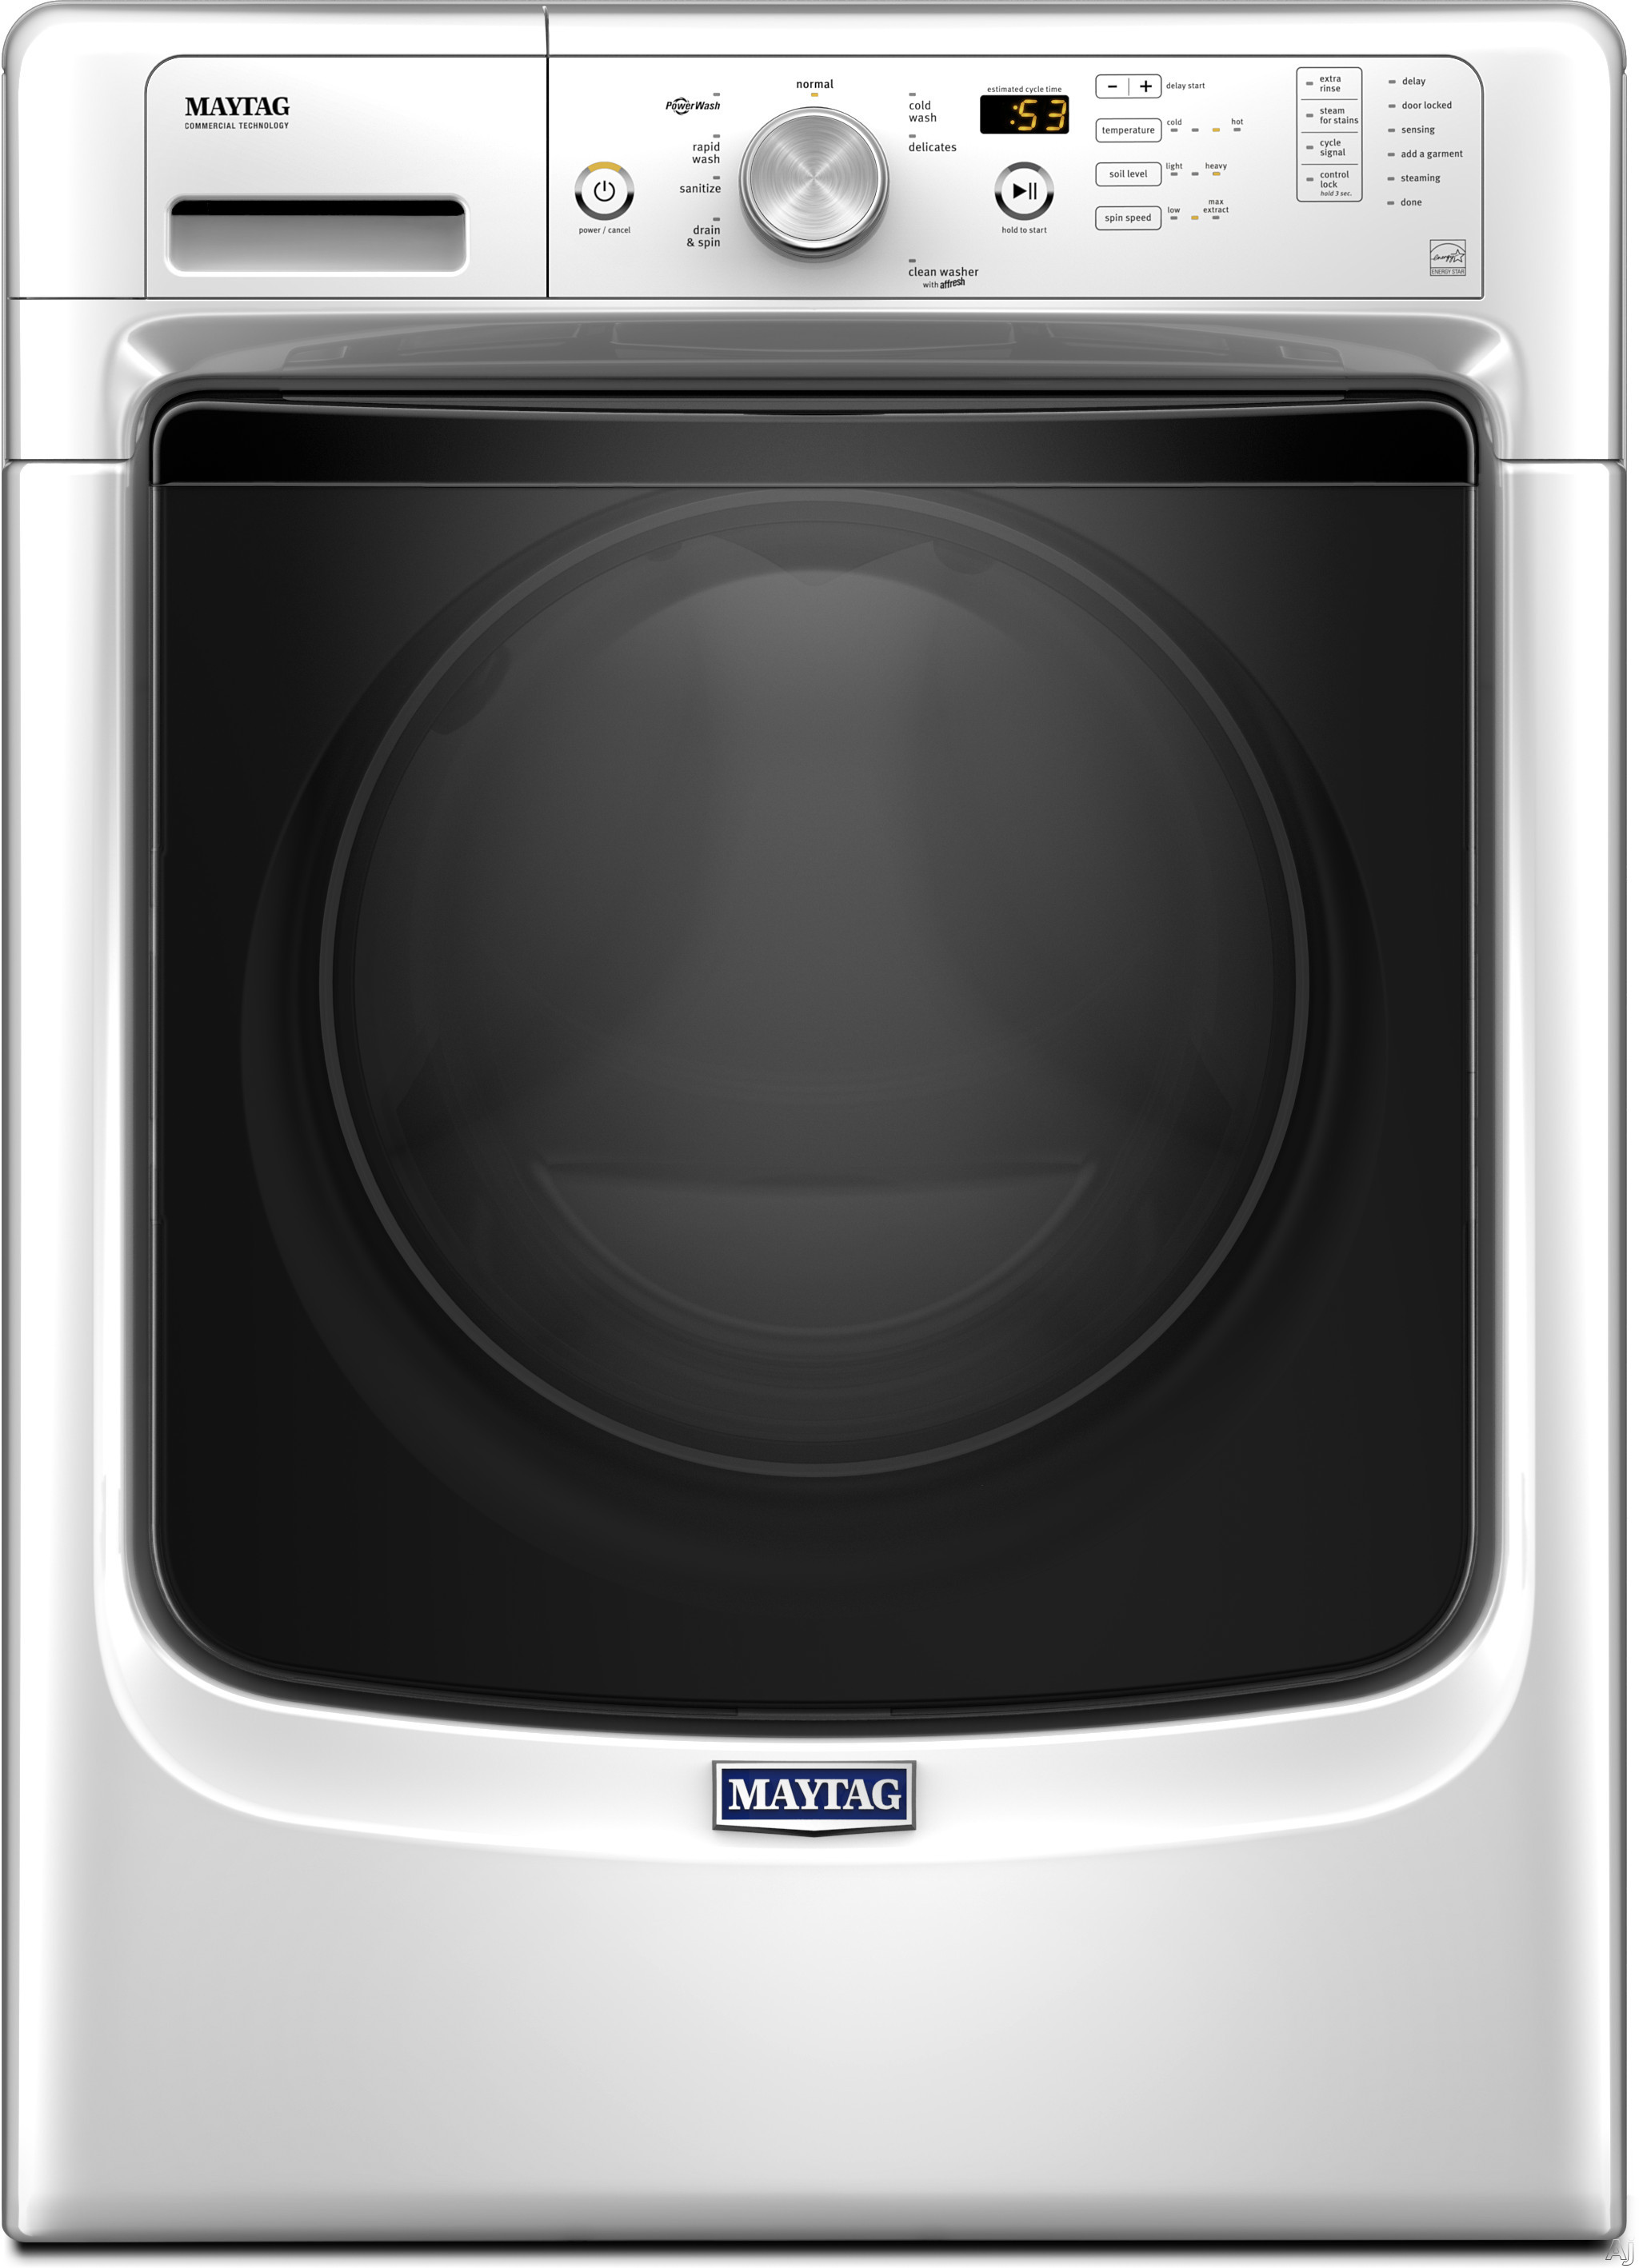 Maytag MHW3505FW 27 Inch 4.3 cu. ft. Front Load Washer with Steam, PowerWash®, Rapid Wash, Sanitize Cycle, 8 Wash Cycles, 4.3 cu. ft. Capacity, 1,200 RPM and Energy Star Rated MHW3505FW